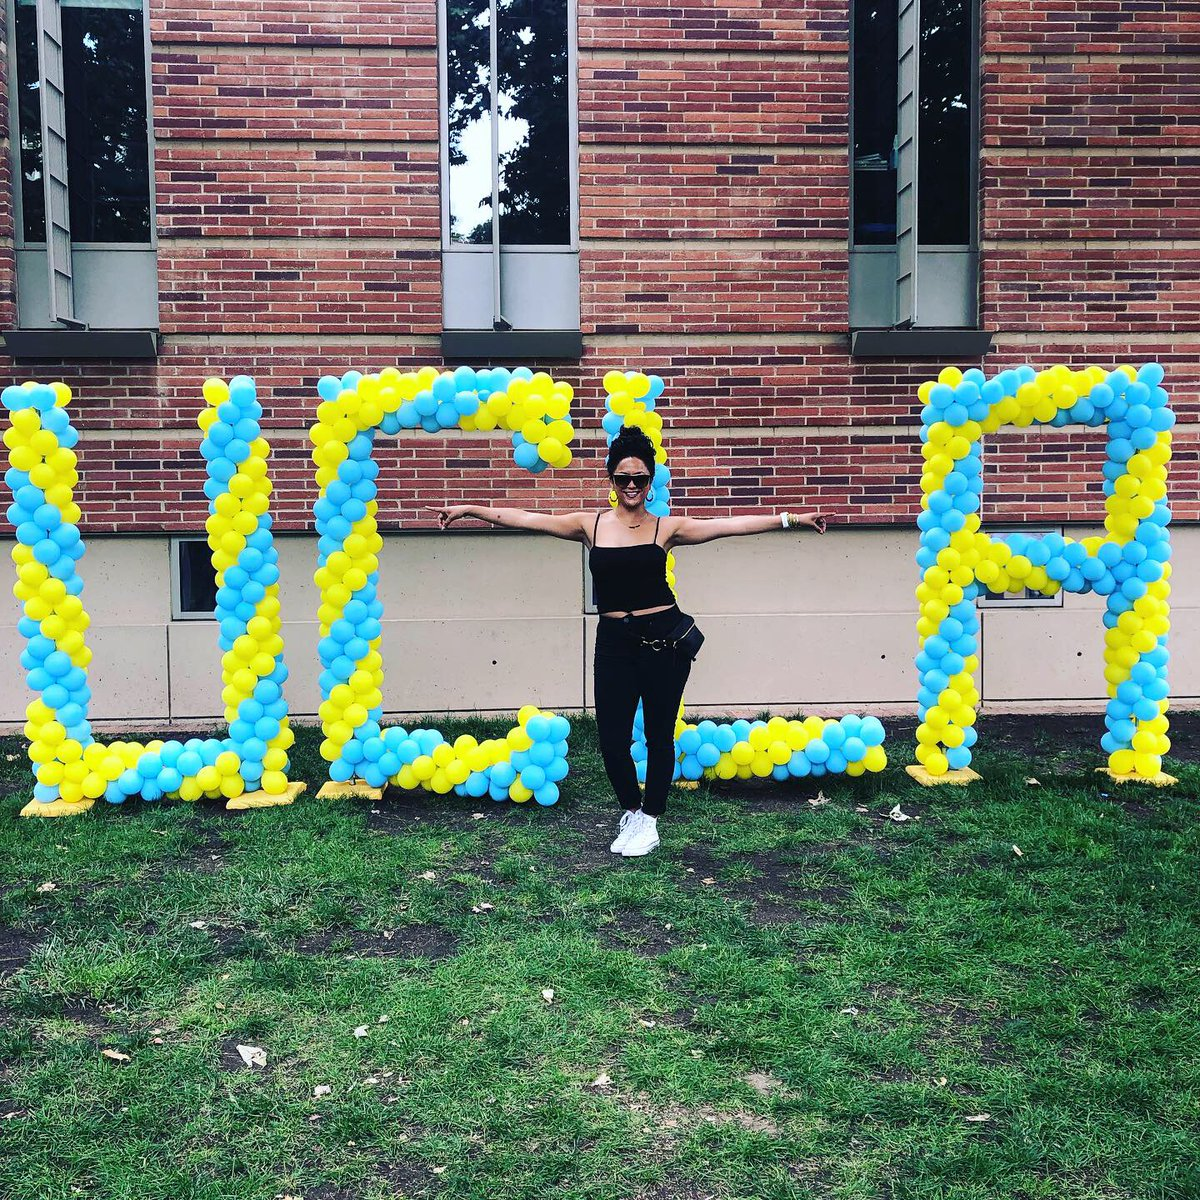 """Congrats to SMC student Elizabeth Sanchez on heading to .@UCLA this fall! 💙 #ProudToBeSMC #UCLAbound #BruinTransfers """"As a non-traditional student, I started college at 33 years old and fell in love. Now at 35, I'm transferring to one of the most iconic, competitive schools!"""""""